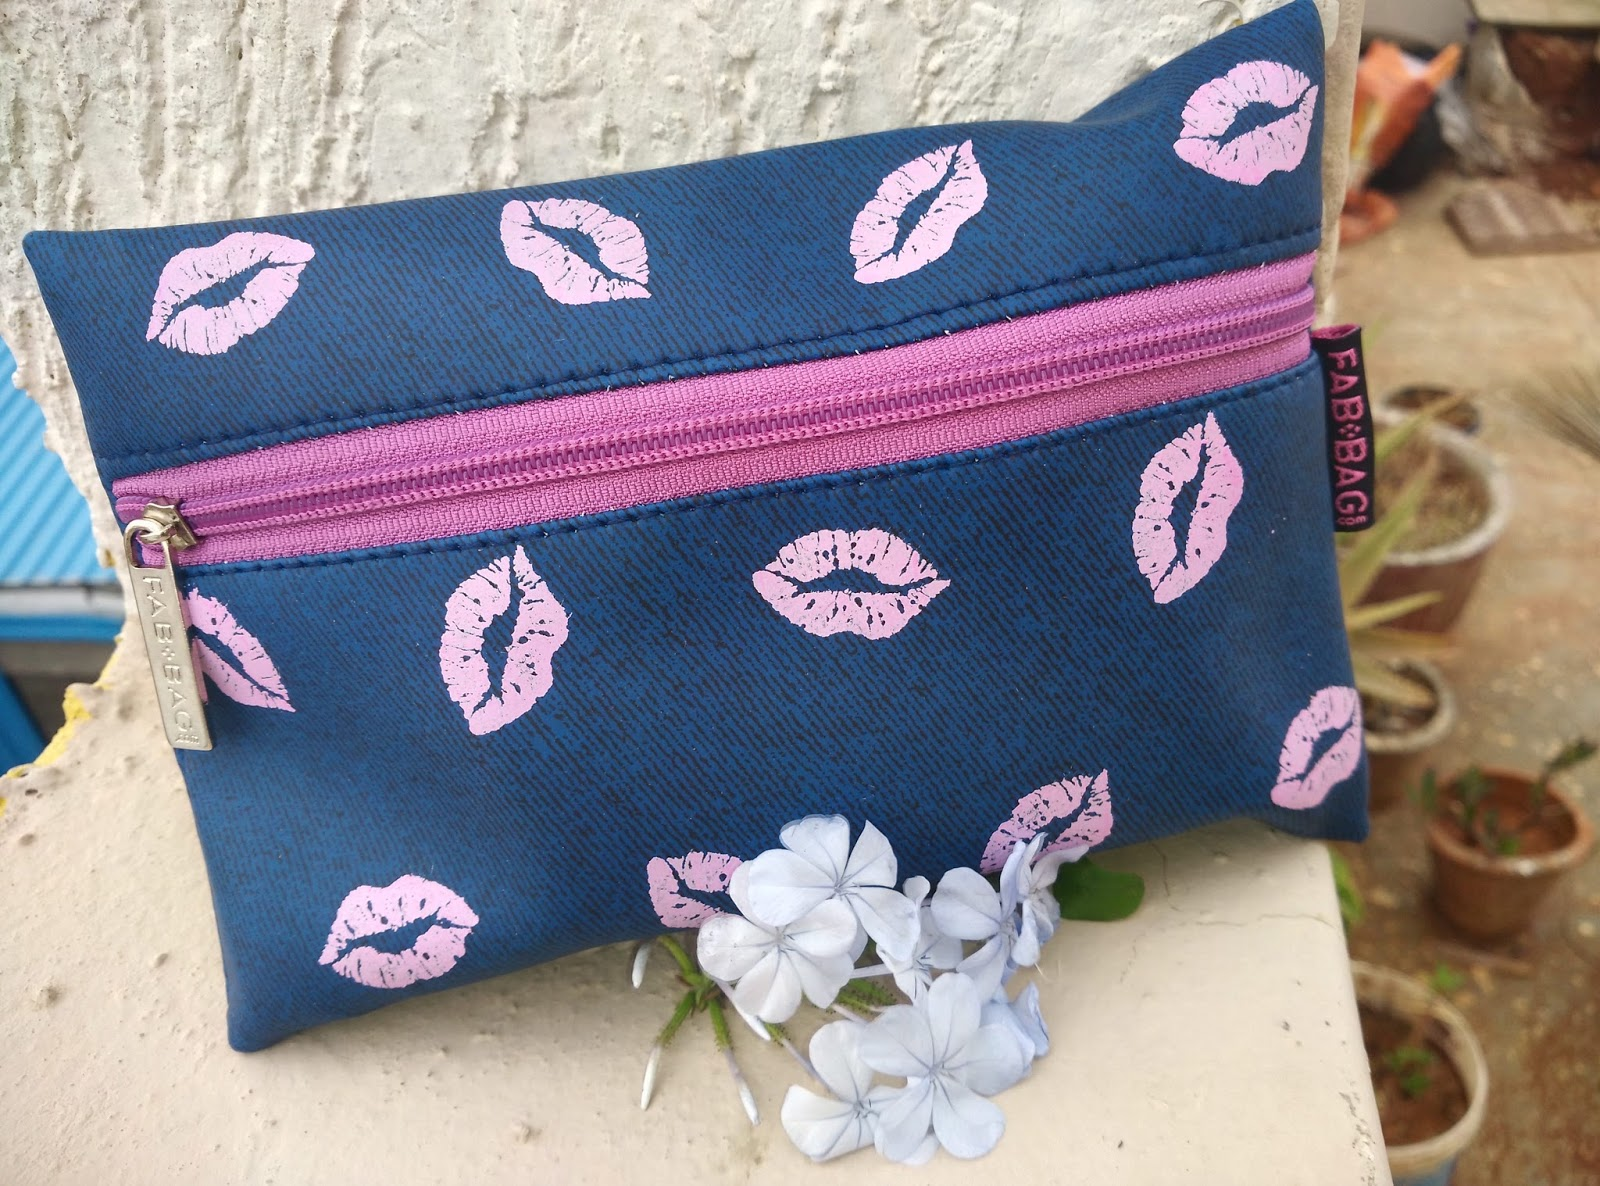 The 'Hello Gorgeous' July Fab Bag Review & Product Details